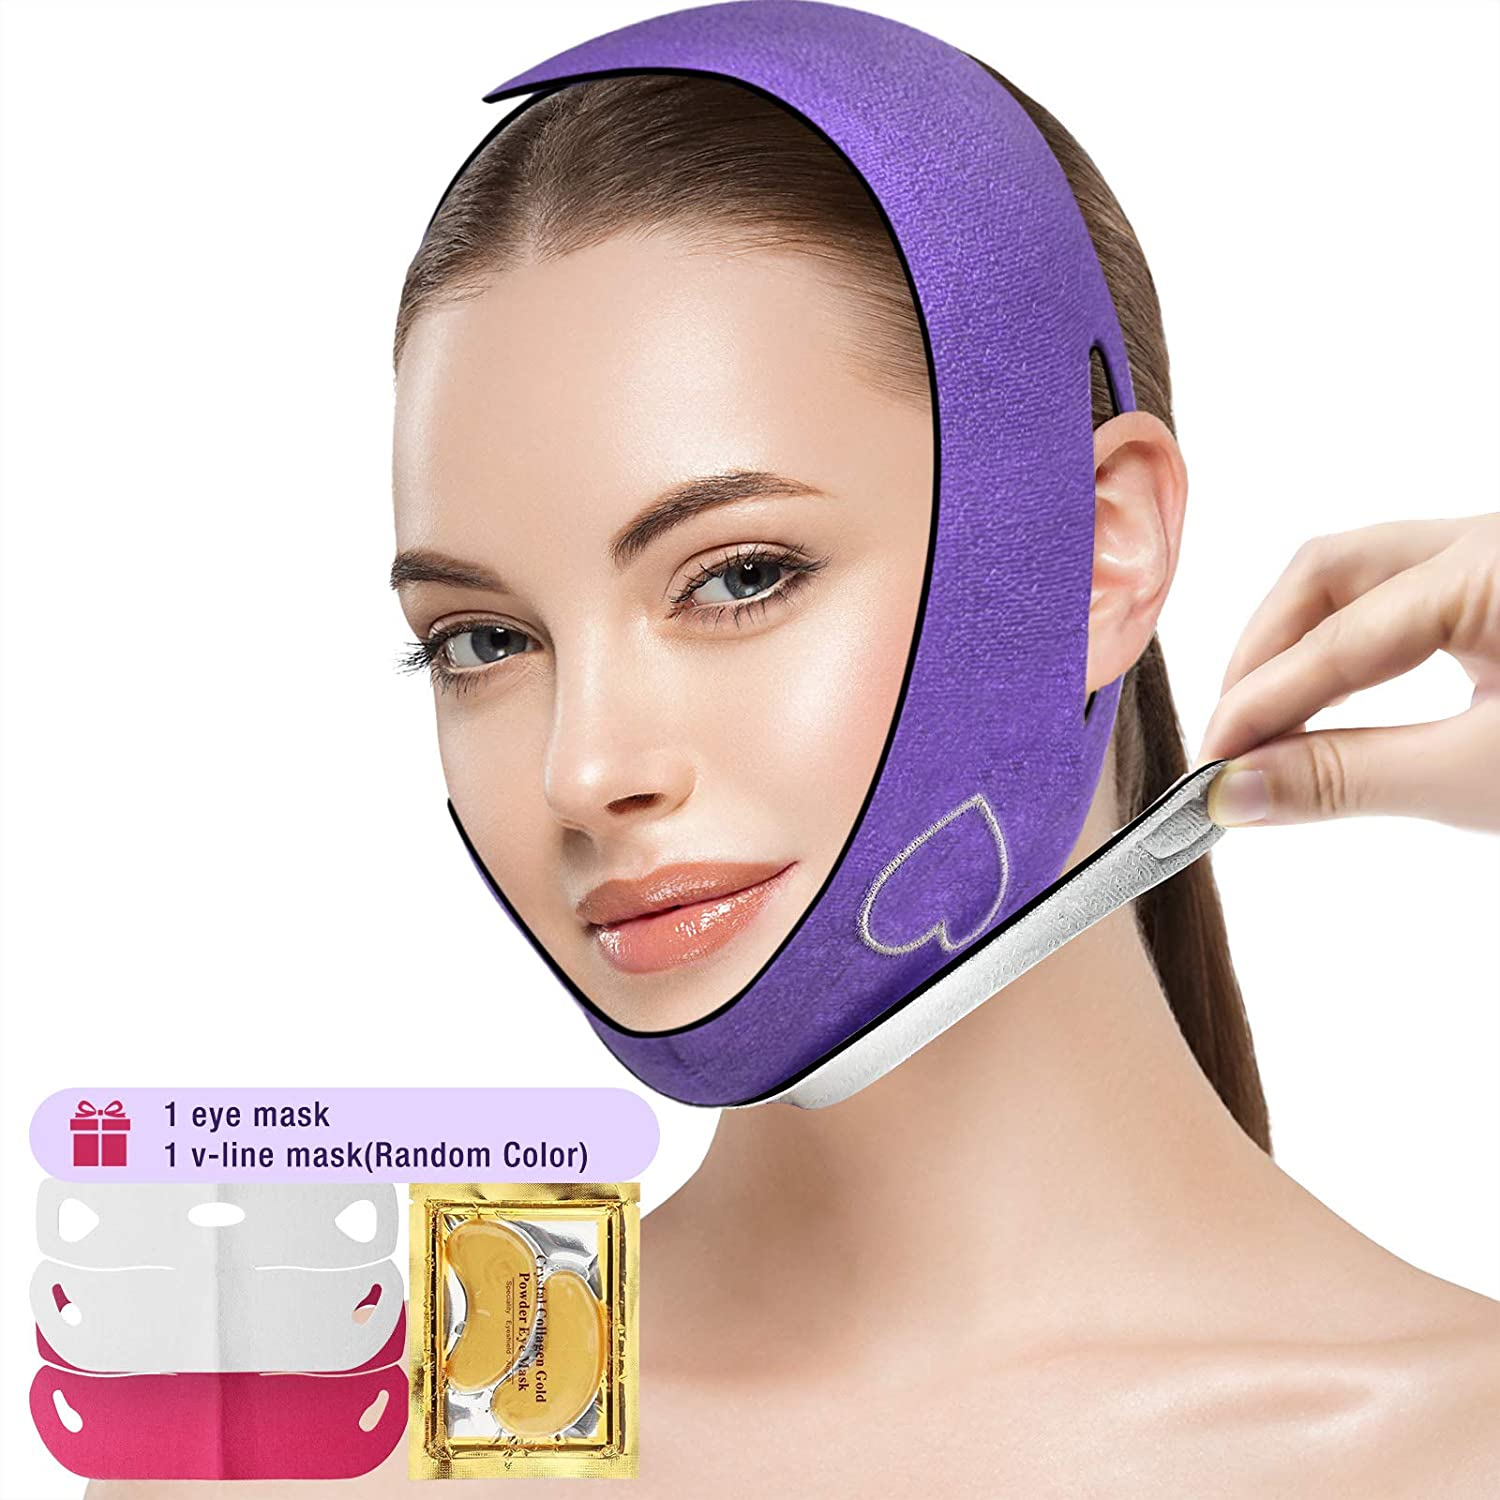 Reusable Graphene Face Manufacturer OFFicial shop Bombing free shipping Slimming Strap Chin Reducer F Pain Double